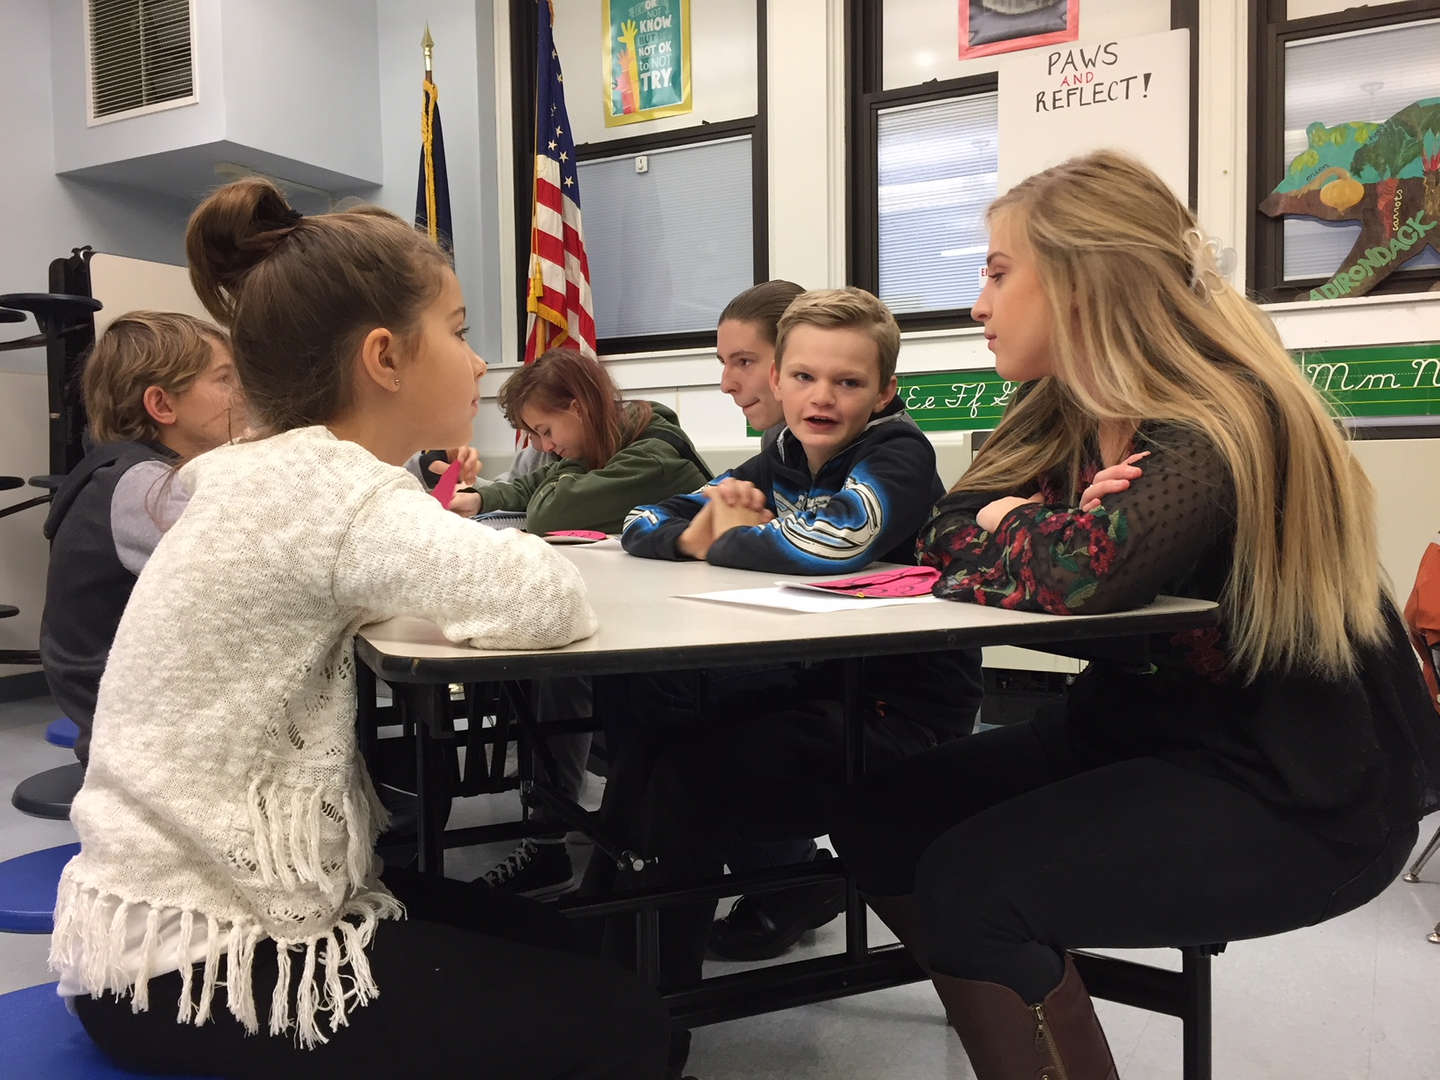 Students working together in a classroom